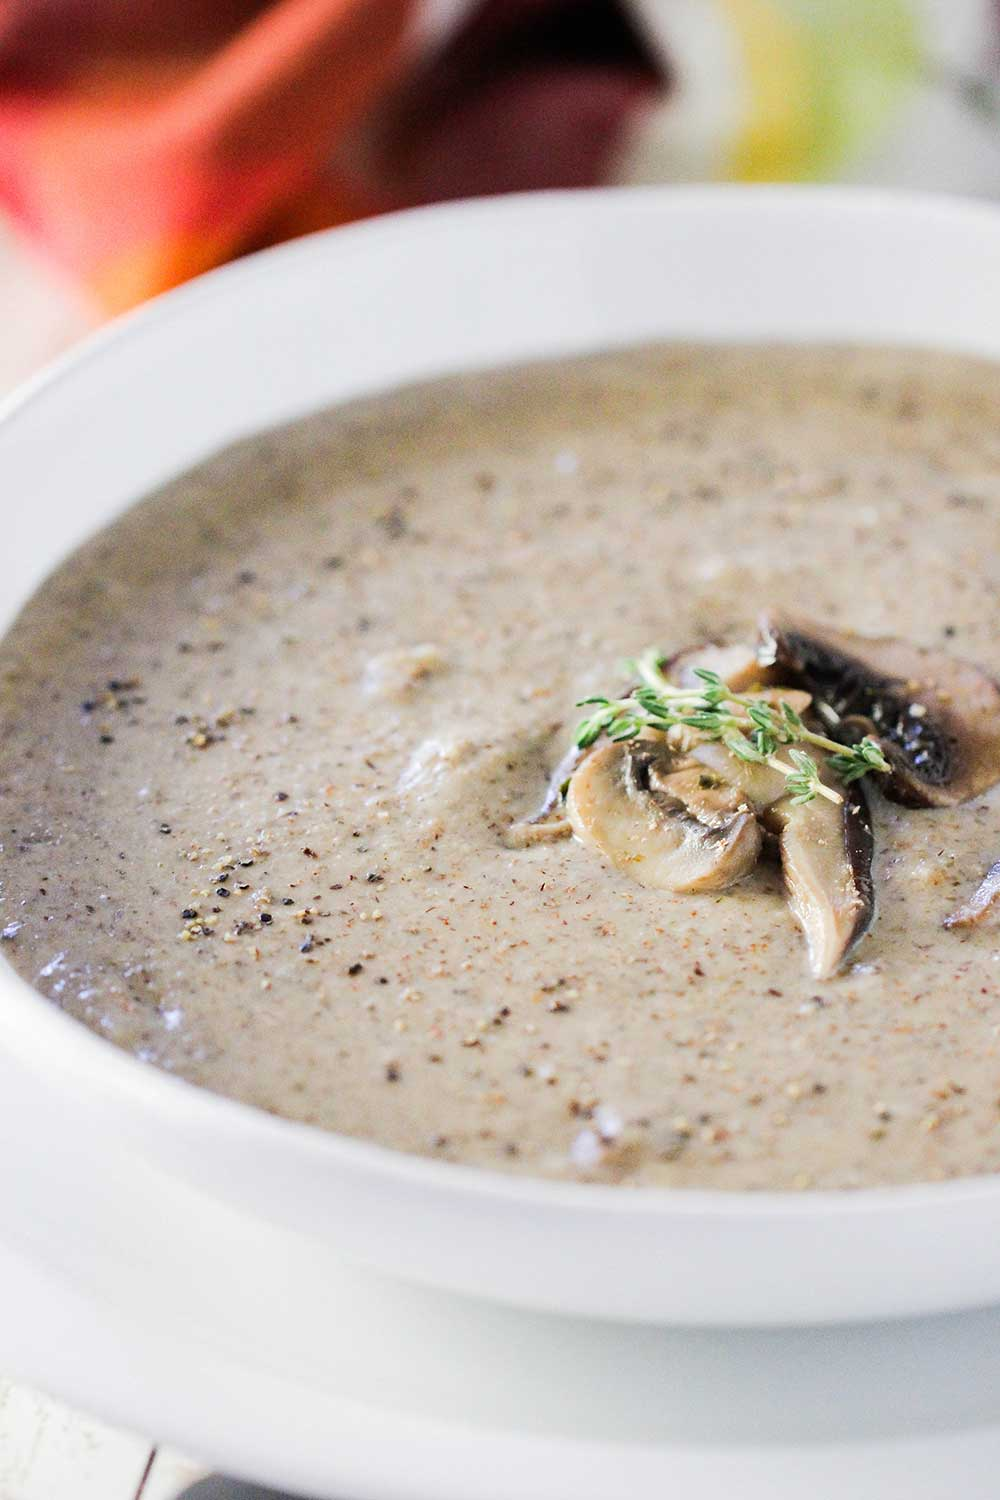 A close up view of a white soup bowl holding cream of mushroom soup with sautéed mushrooms on top.